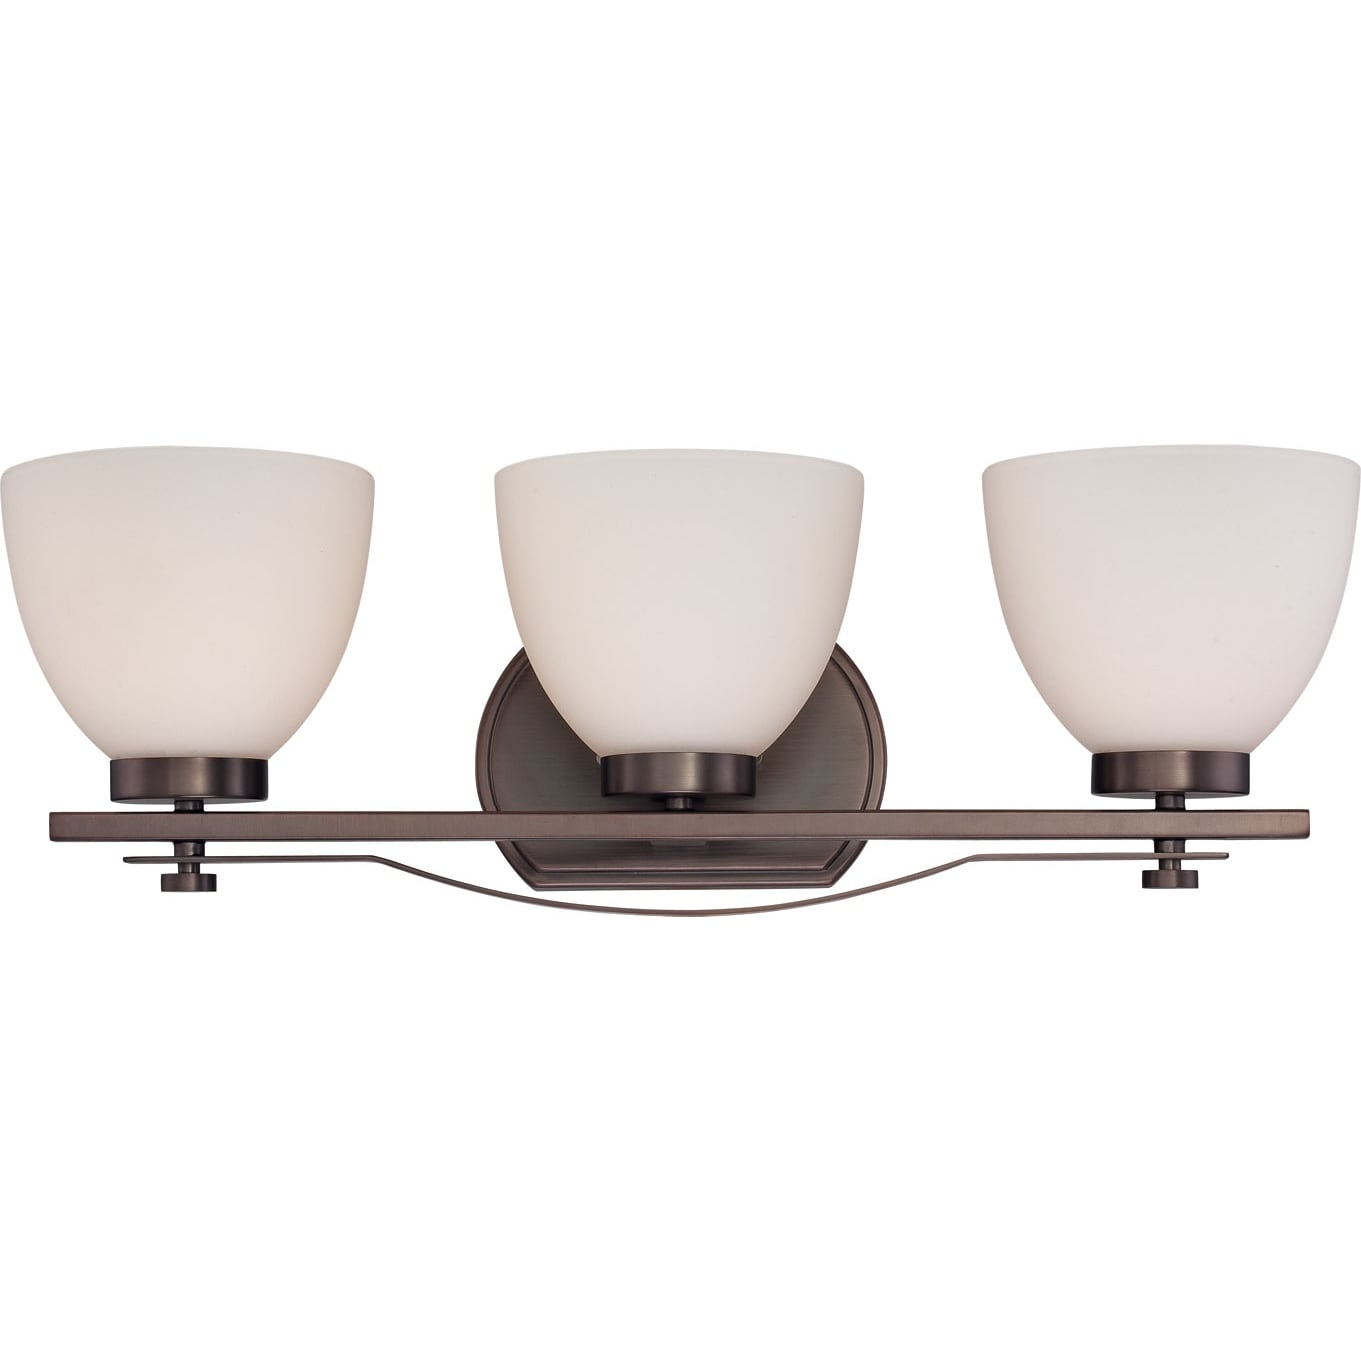 Nuvo Bentley 3-light Hazel Bronze Vanity Fixture